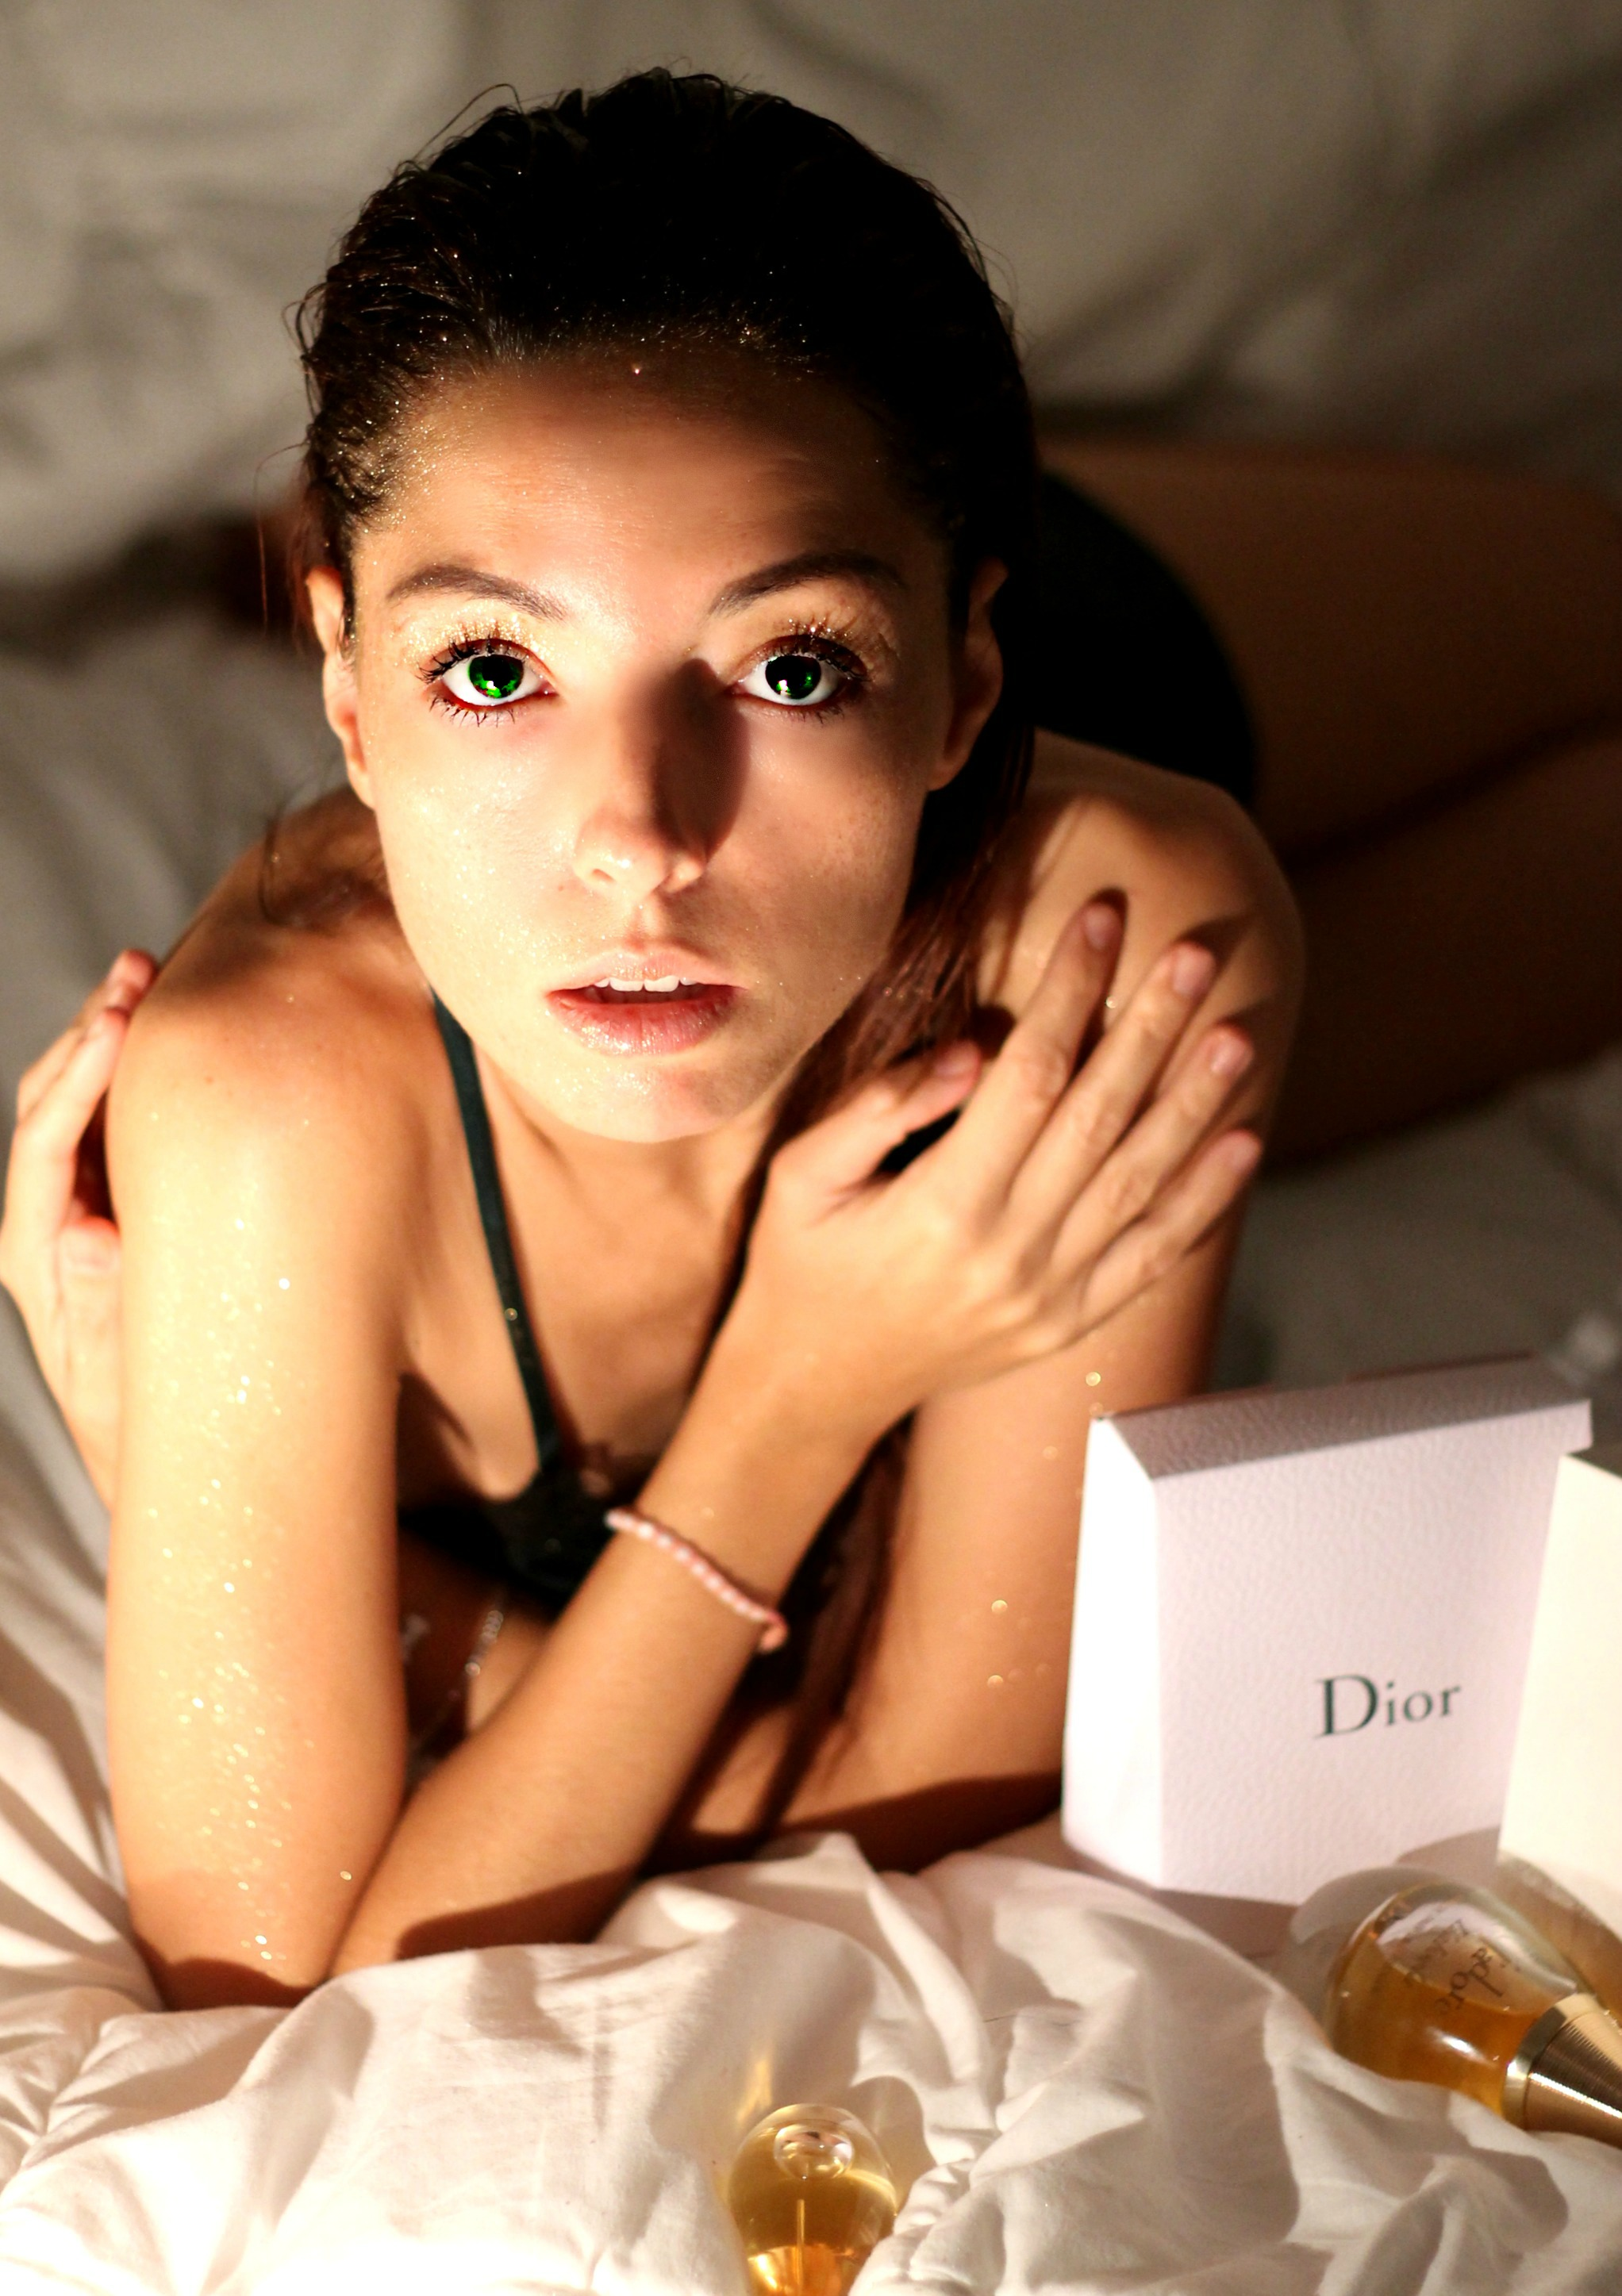 dior perfume touche de parfum, theladycracy.it, elisa bellino, fashion blog italiane, fashion blogger famose